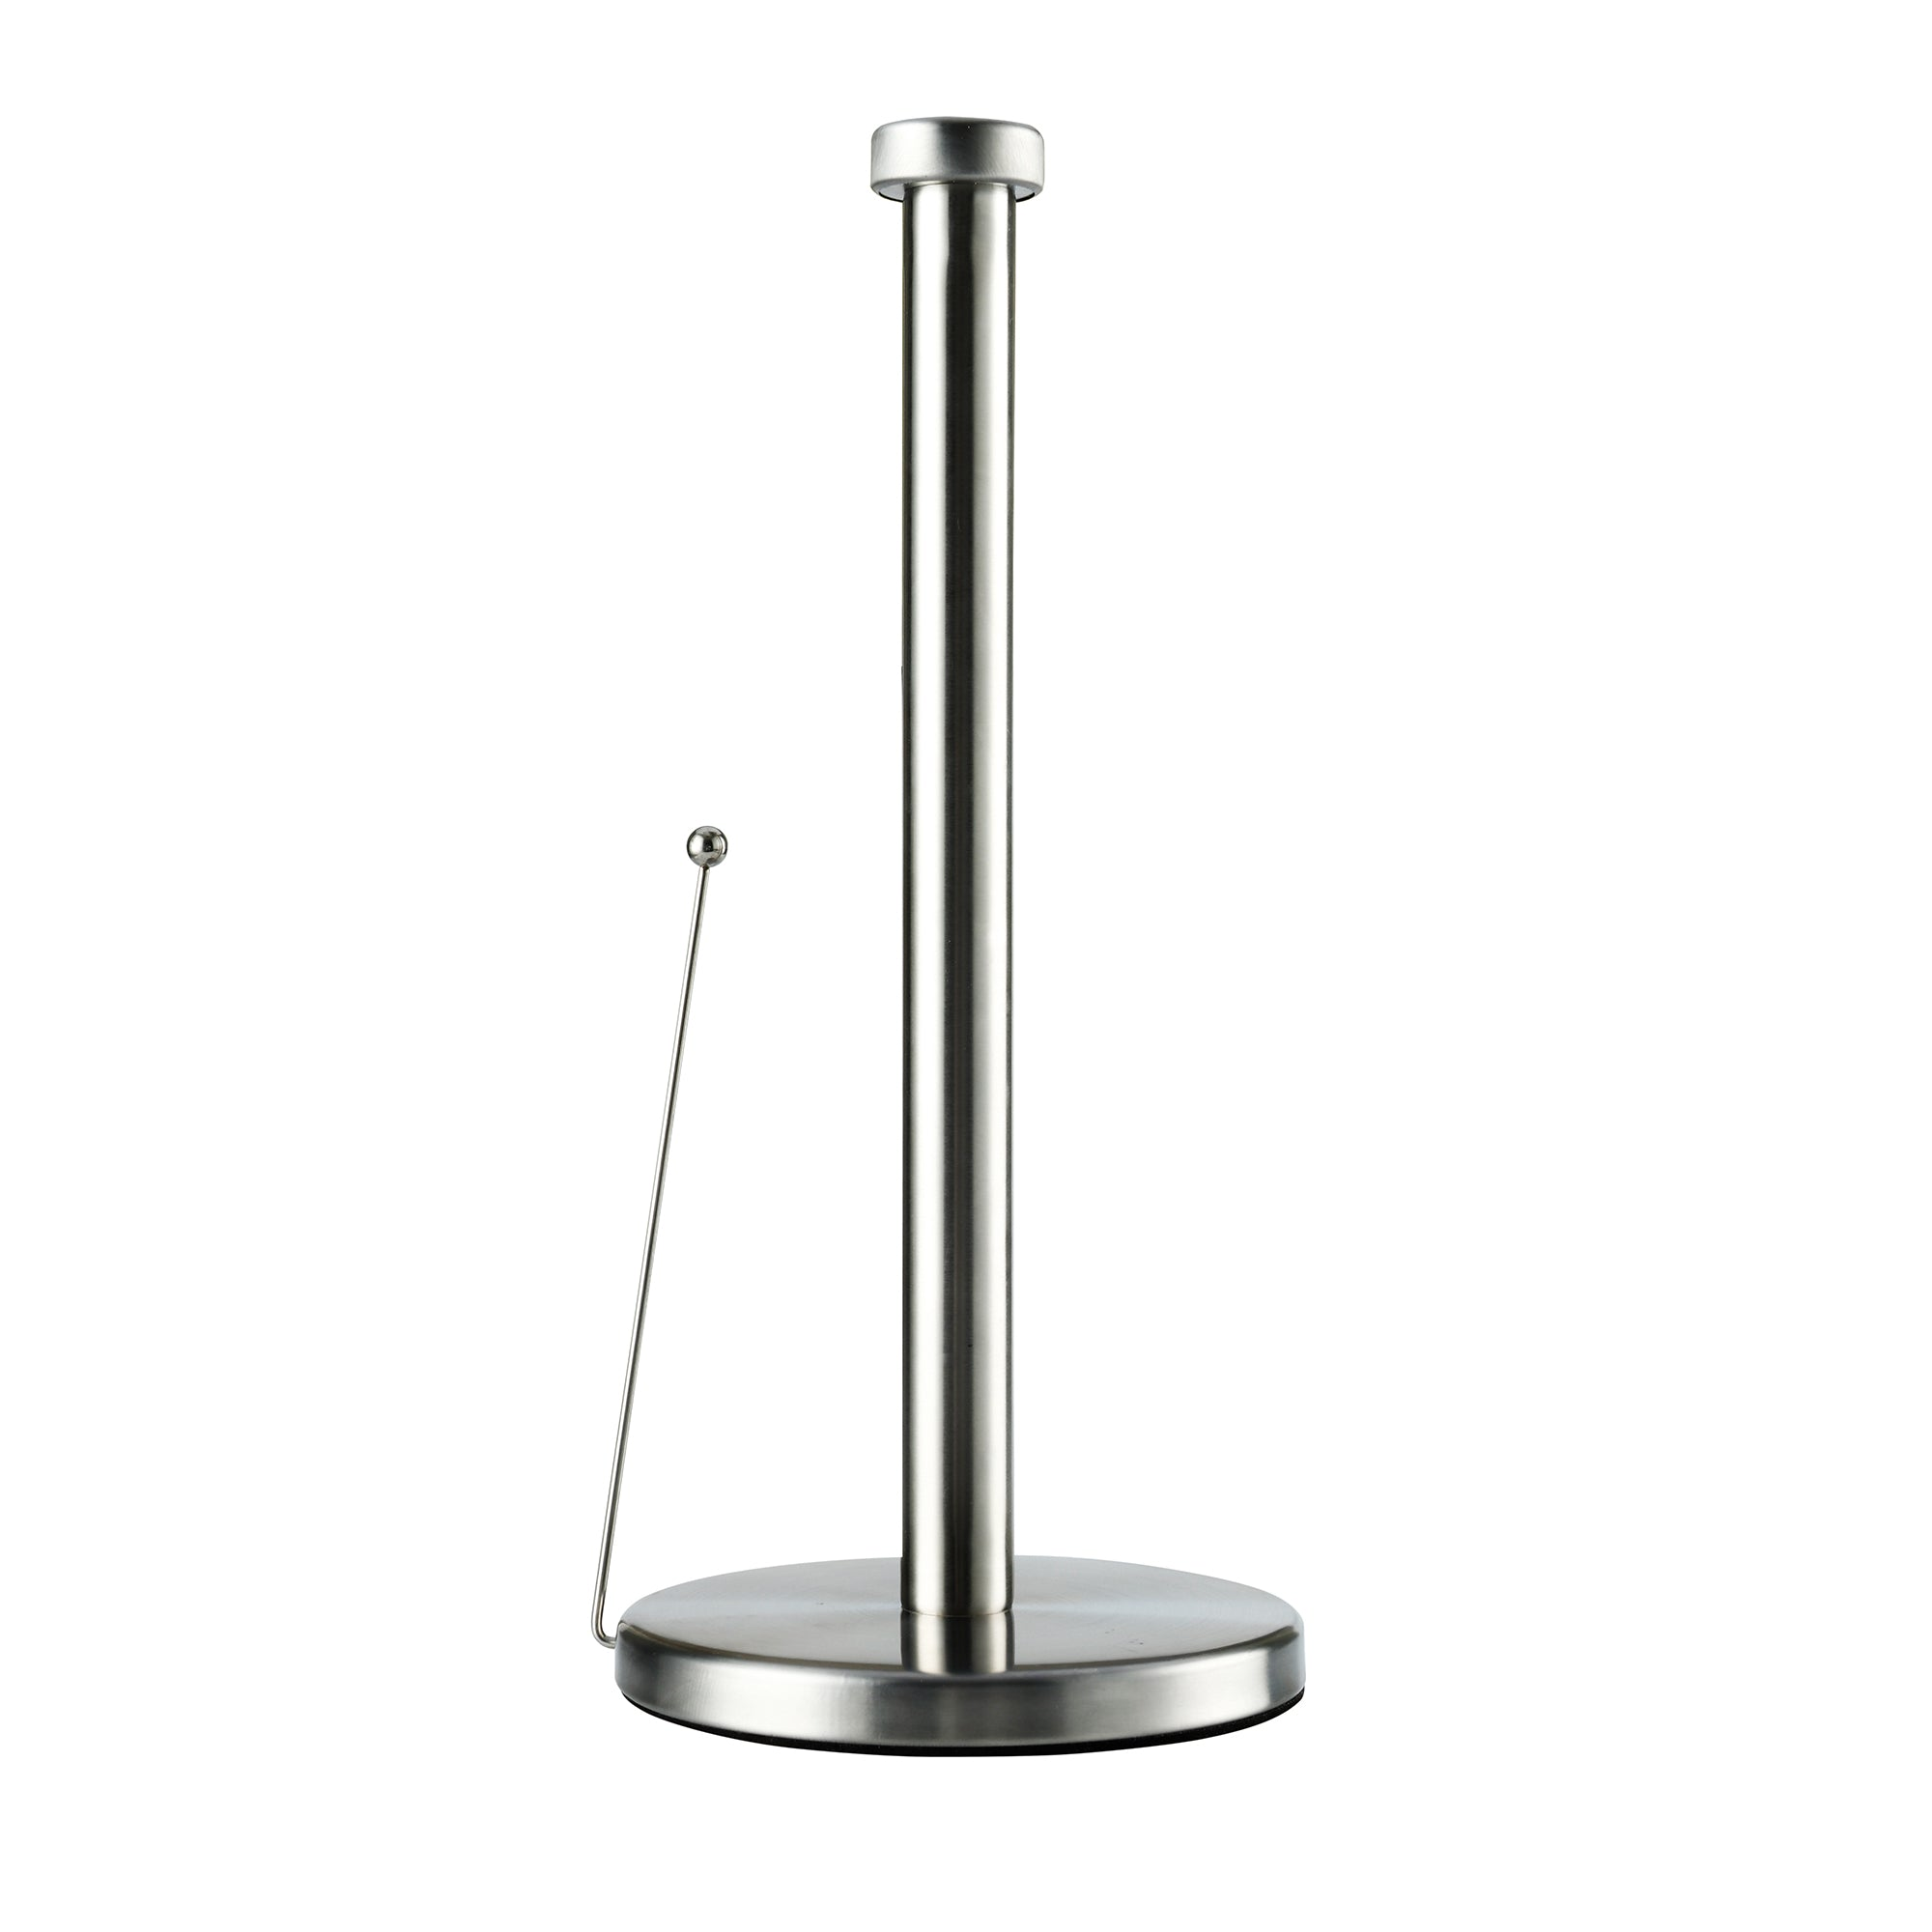 Brushed Steel Spring-Loaded Kitchen Towel Holder